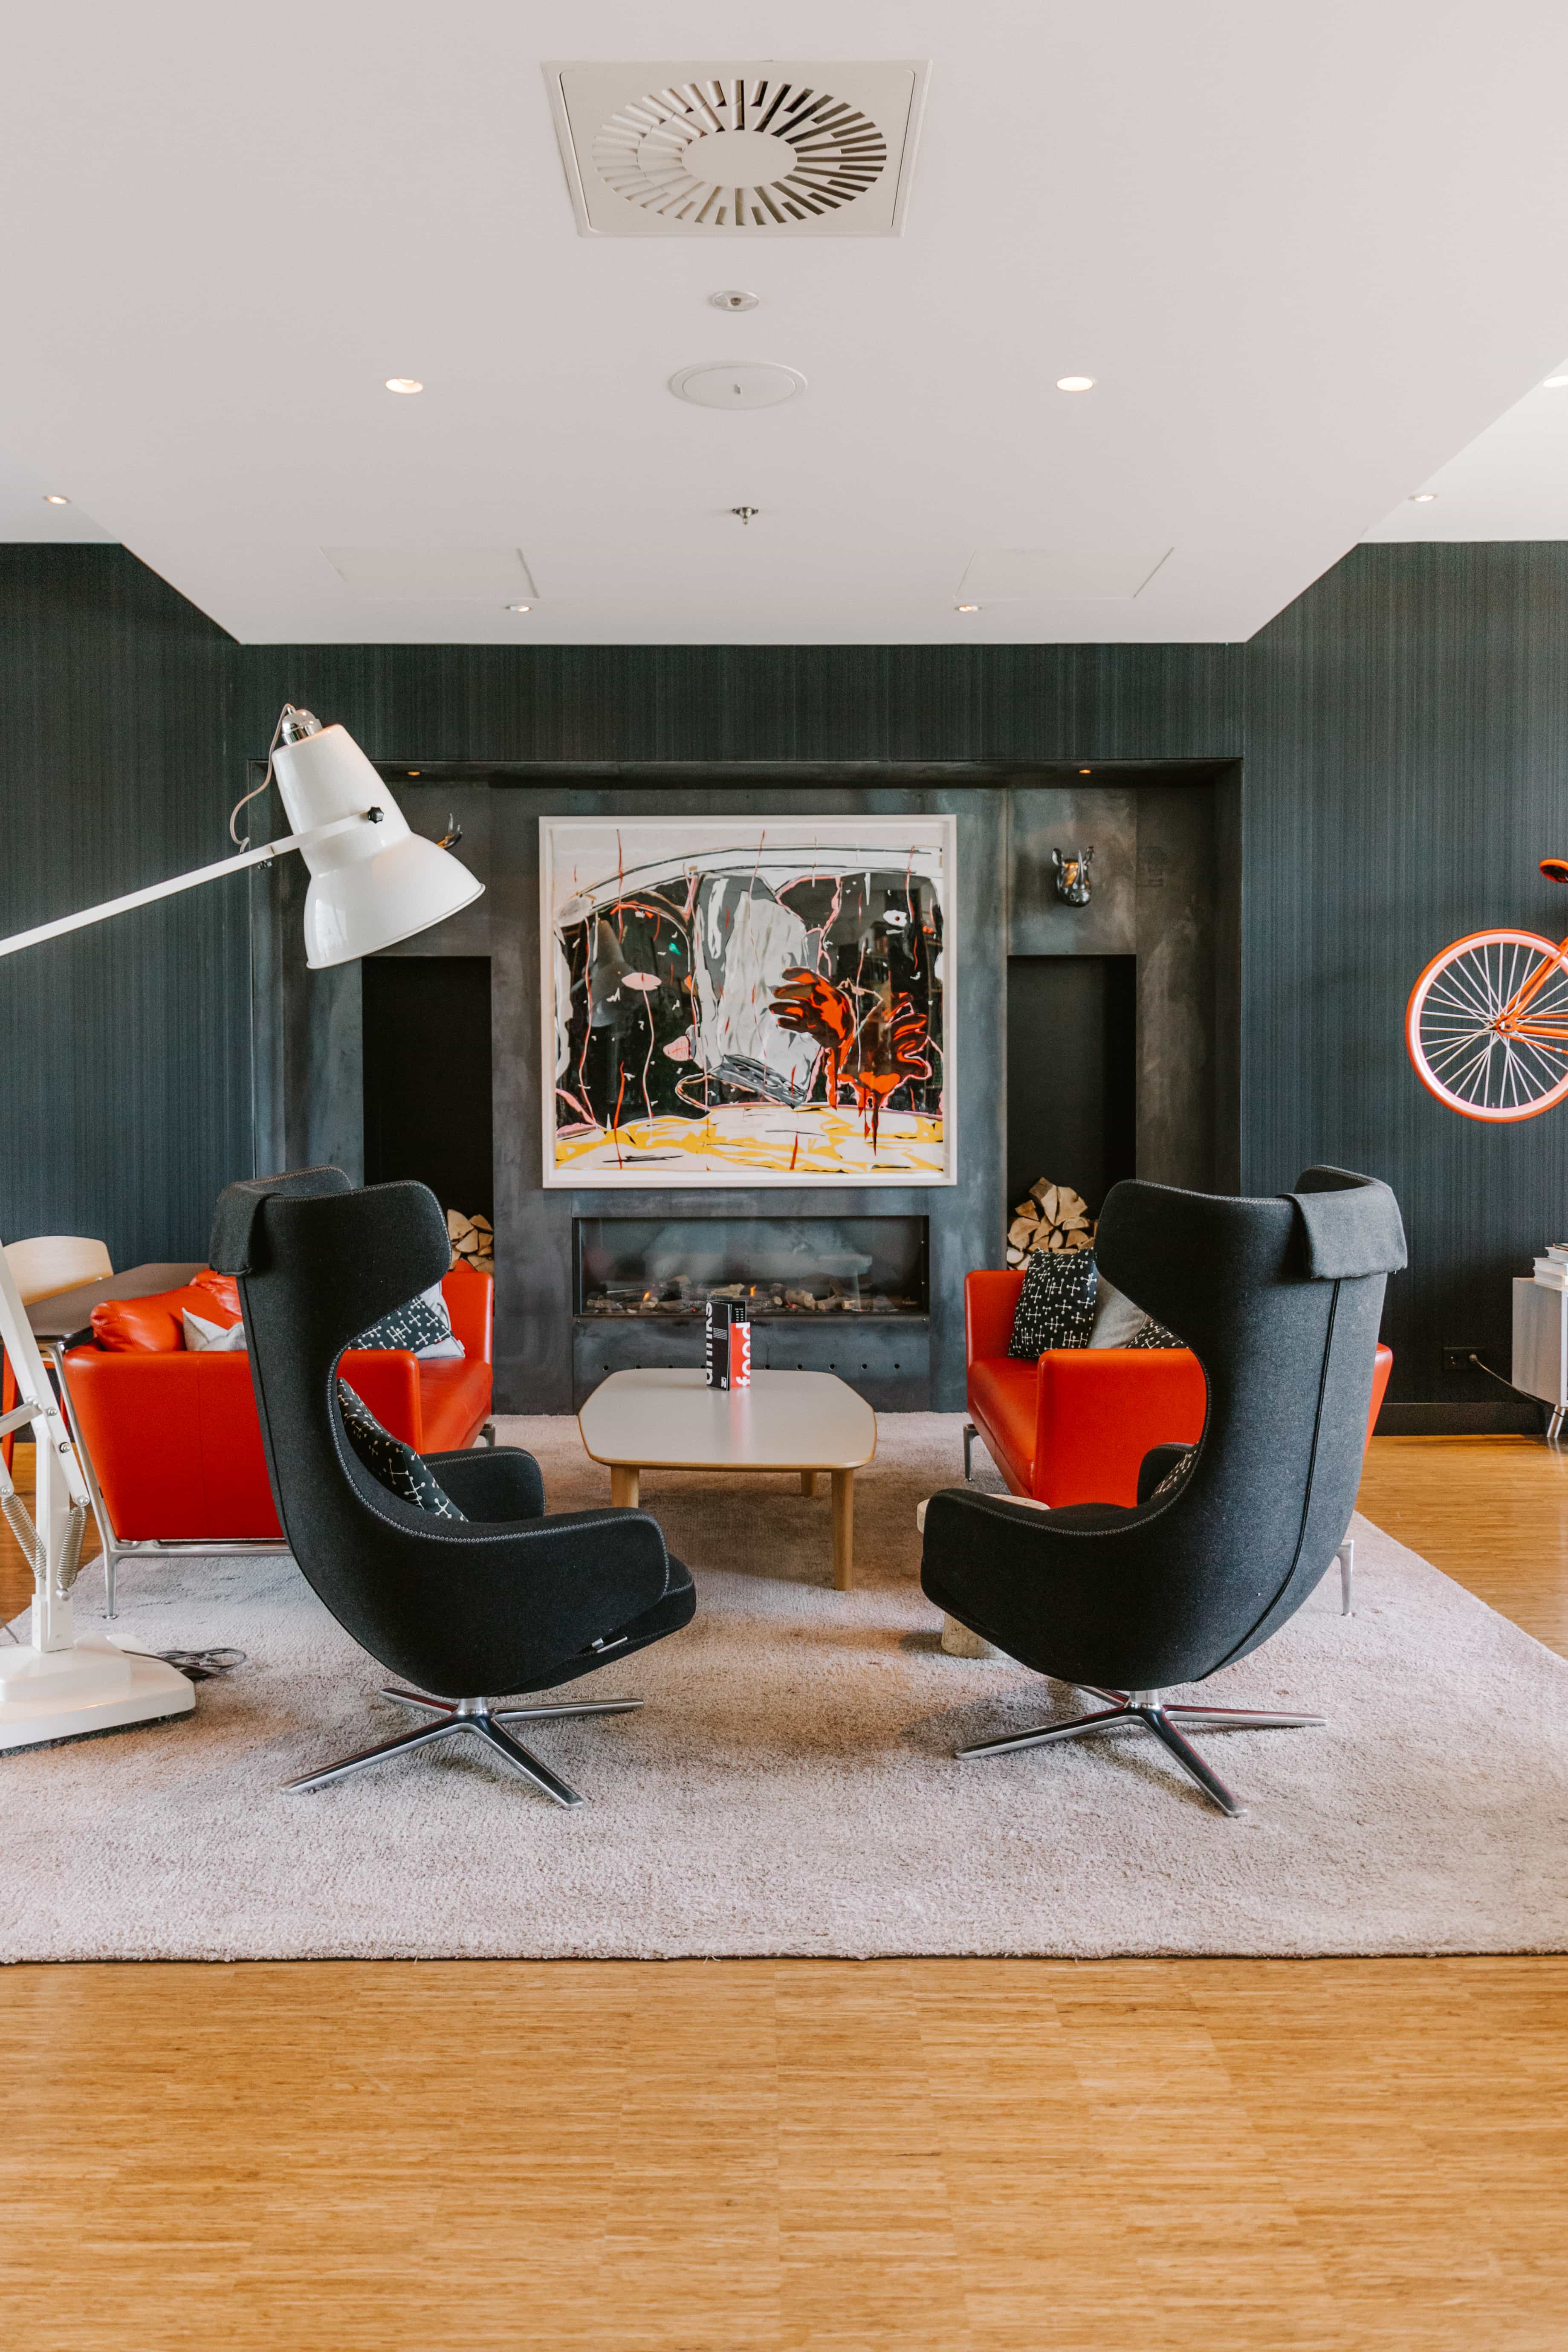 where to stay in rotterdam - citizenm rotterdam